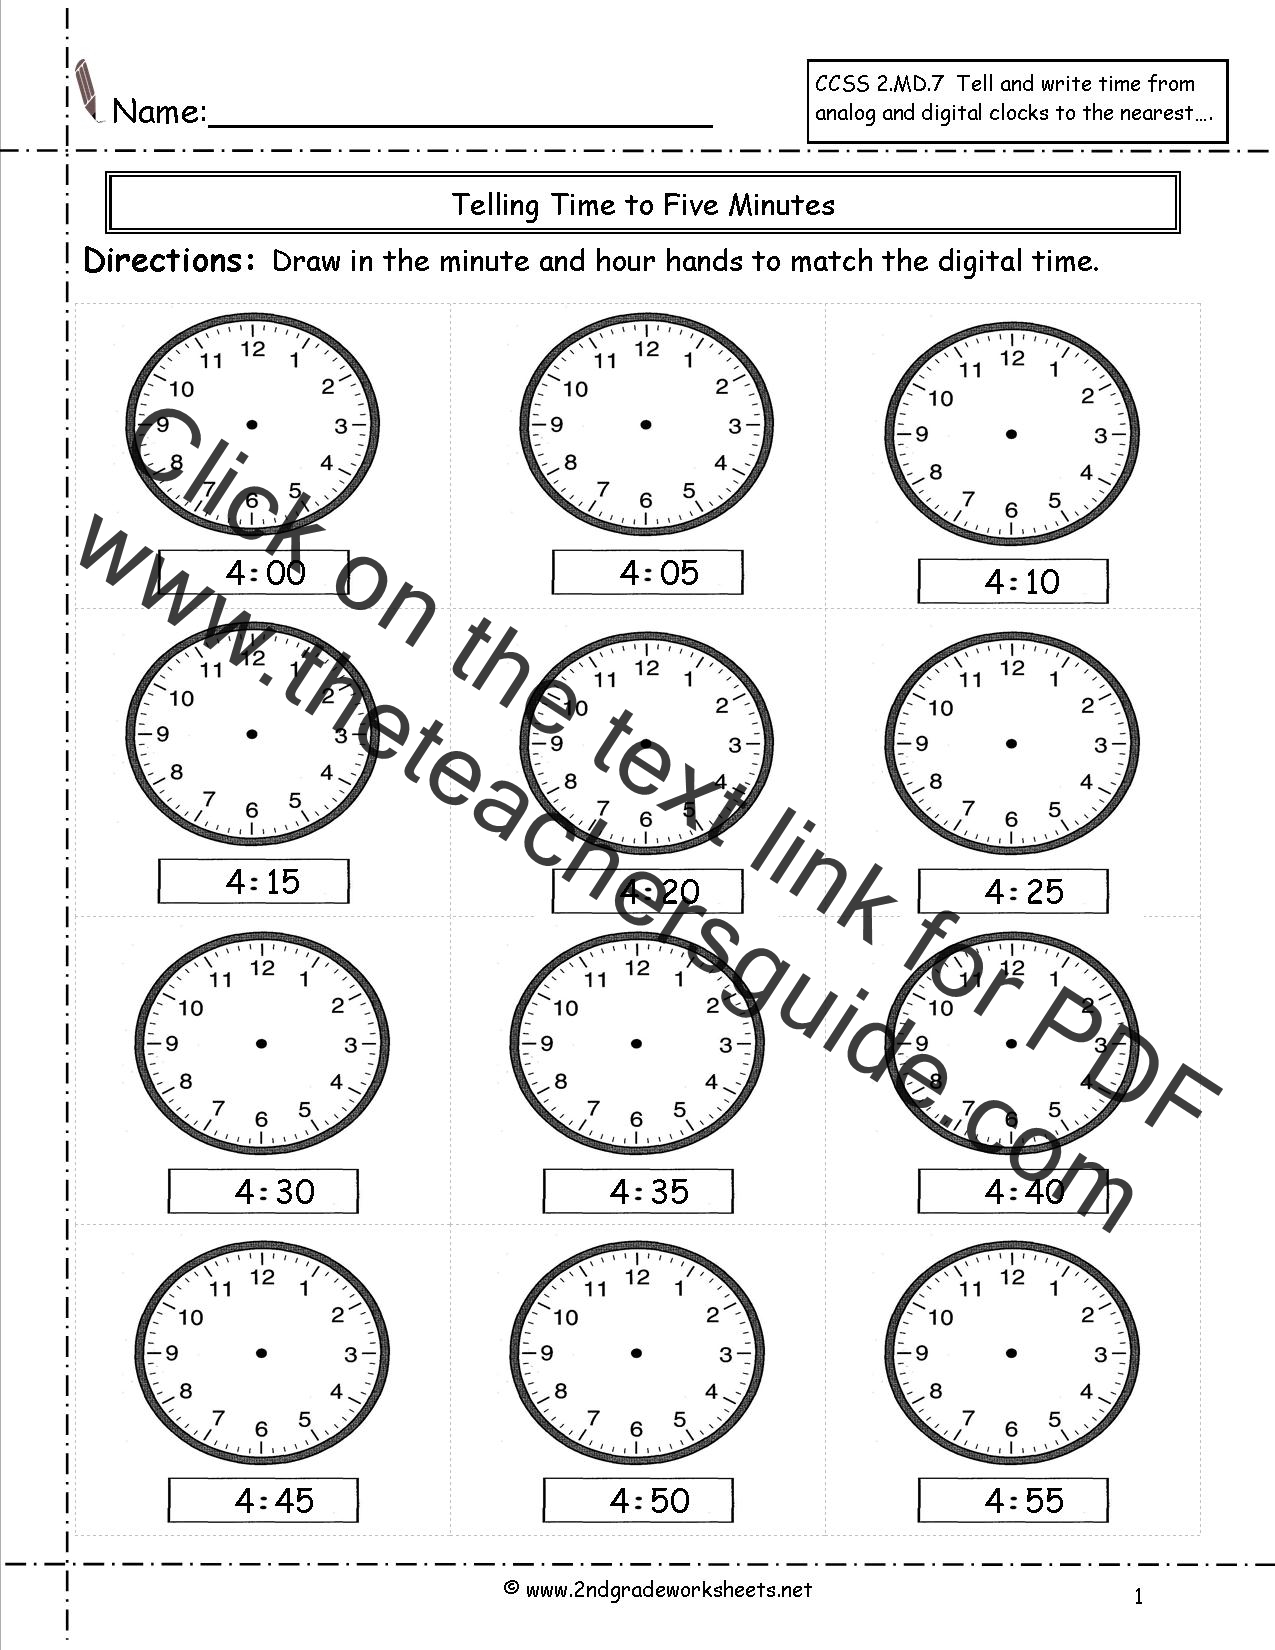 worksheet Telling Time To The Hour Worksheet ccss 2 md 7 worksheets telling time to five minutes worksheets